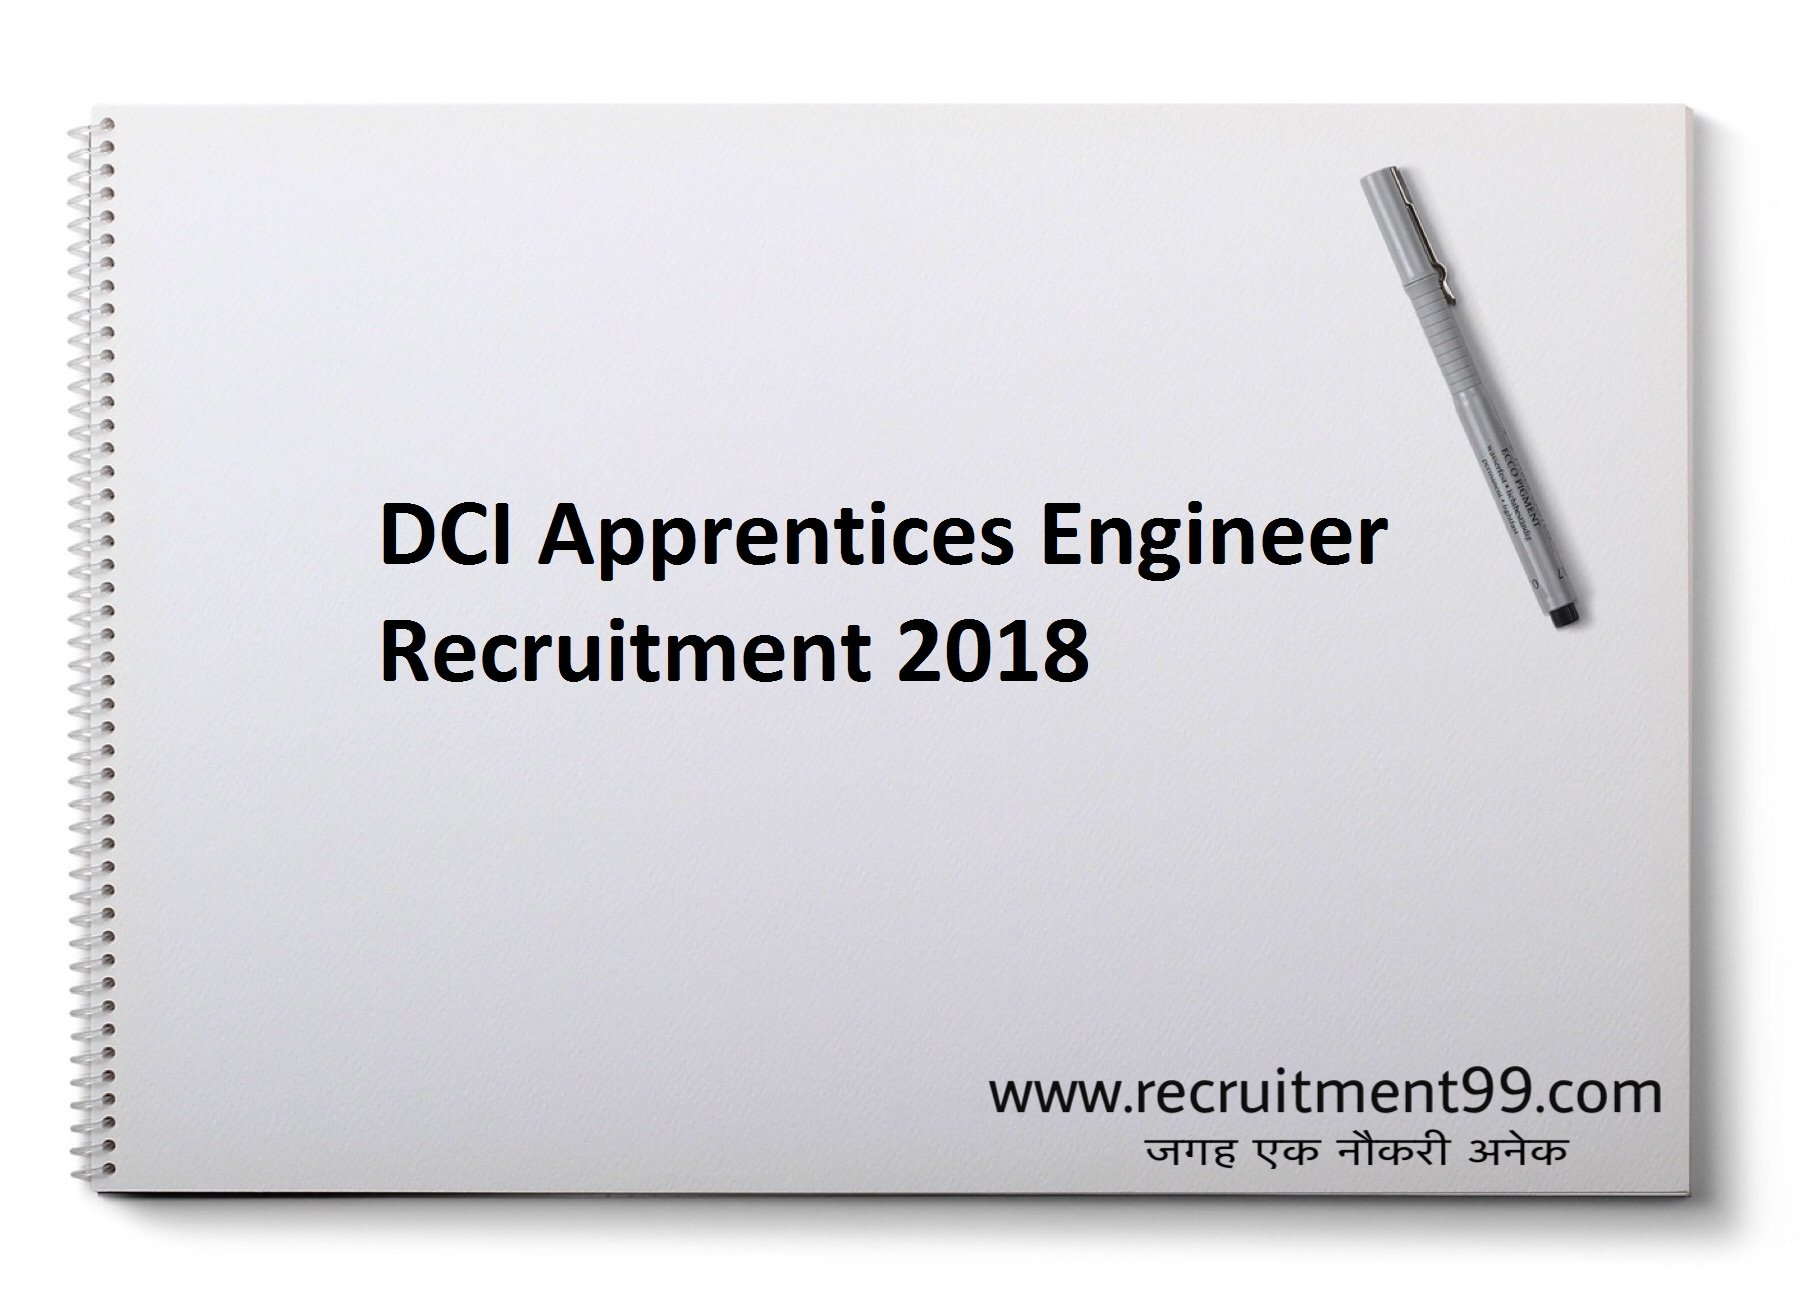 DCI Apprentices Engineer Recruitment Admit Card Result 2018